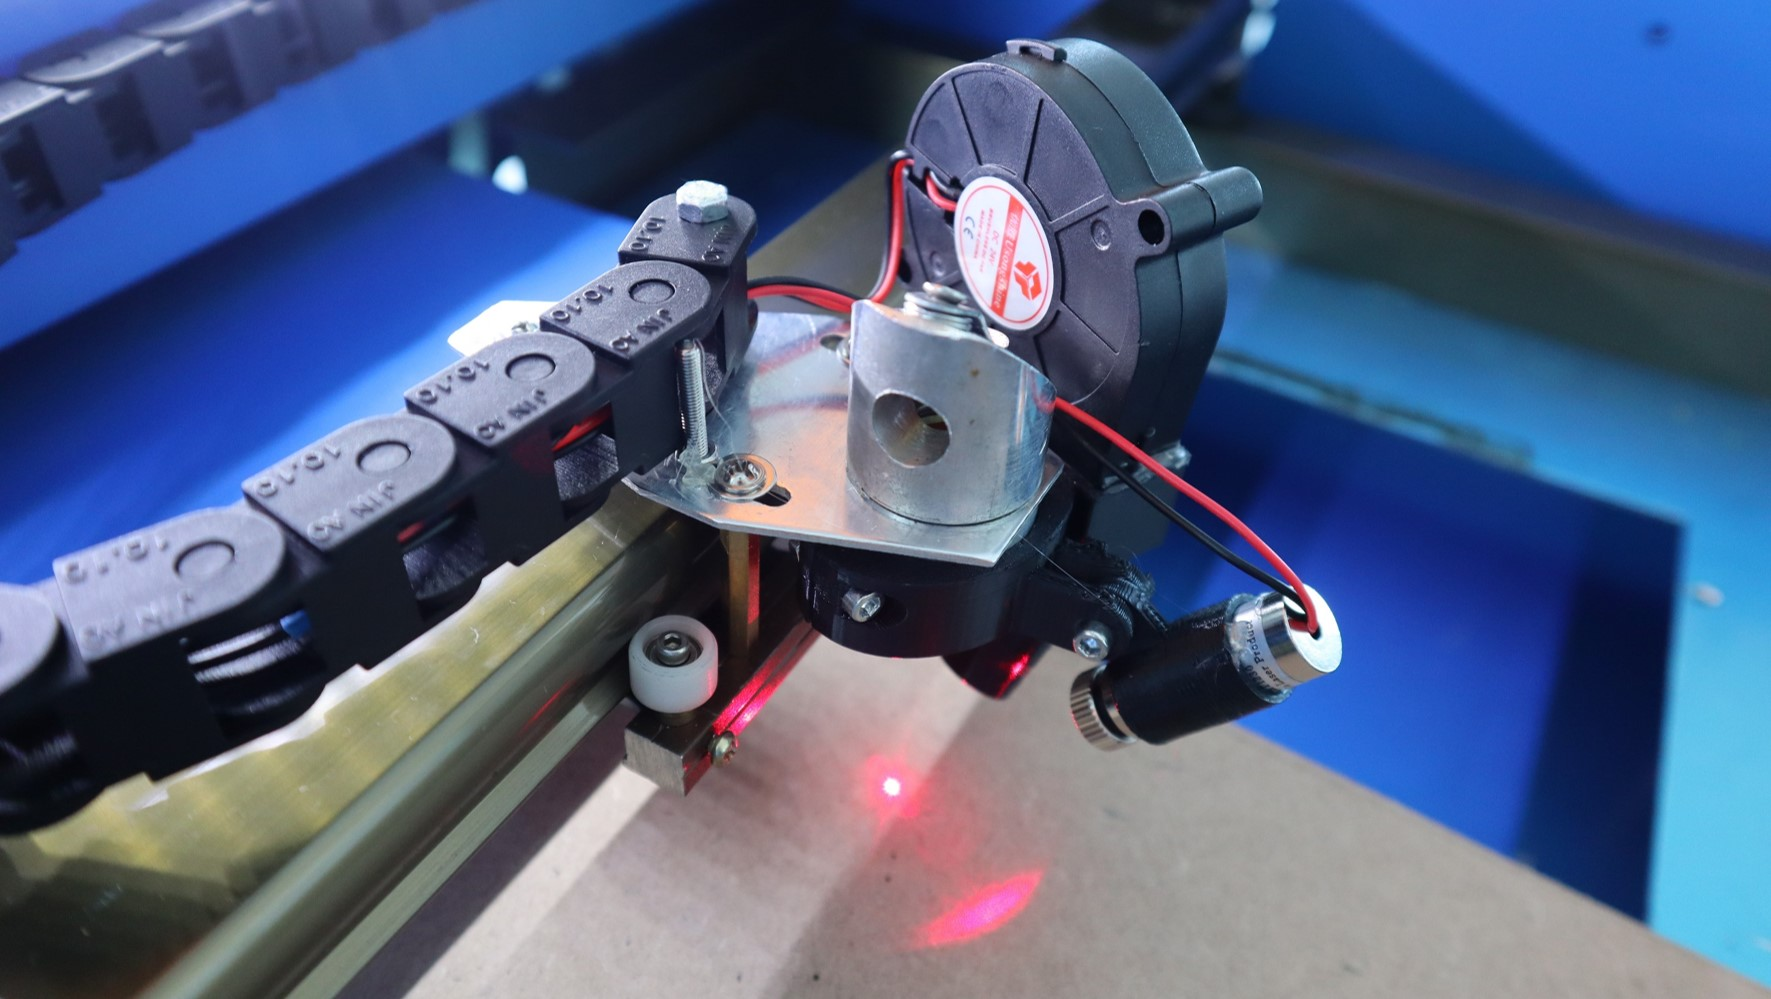 How To Add A Red Dot Pointer To A K40 Laser Cutter